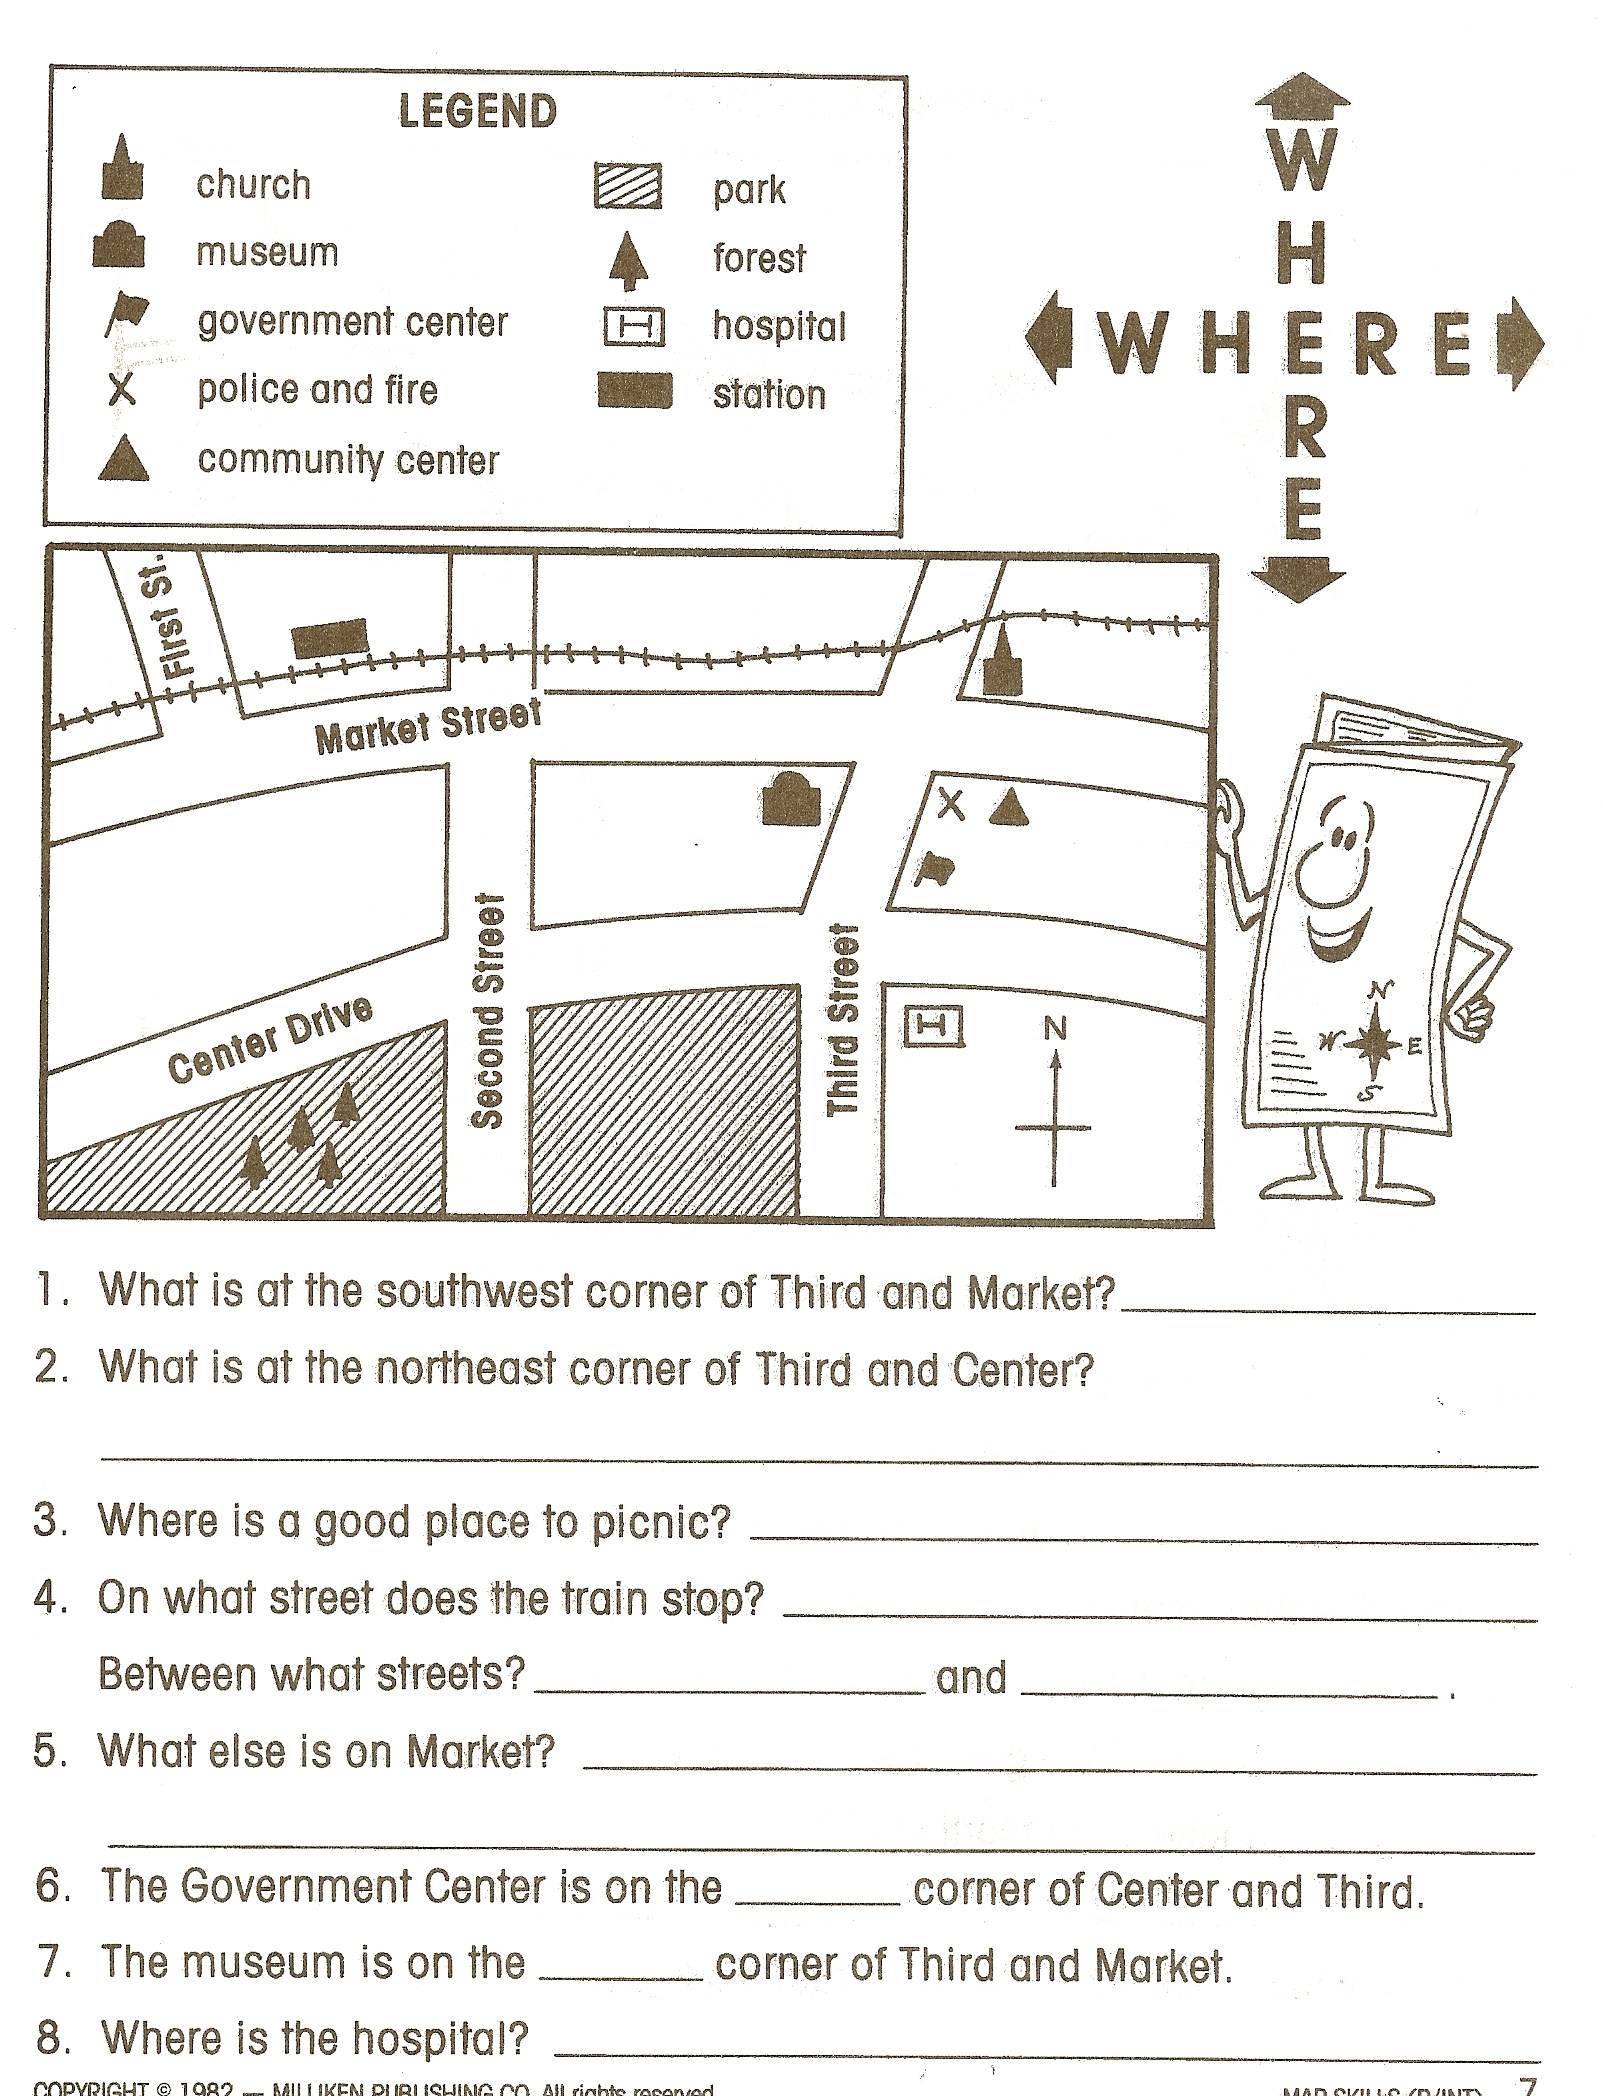 Printable worksheets for 7th grade social studies Top Freeware – 7th Grade Social Studies Worksheets